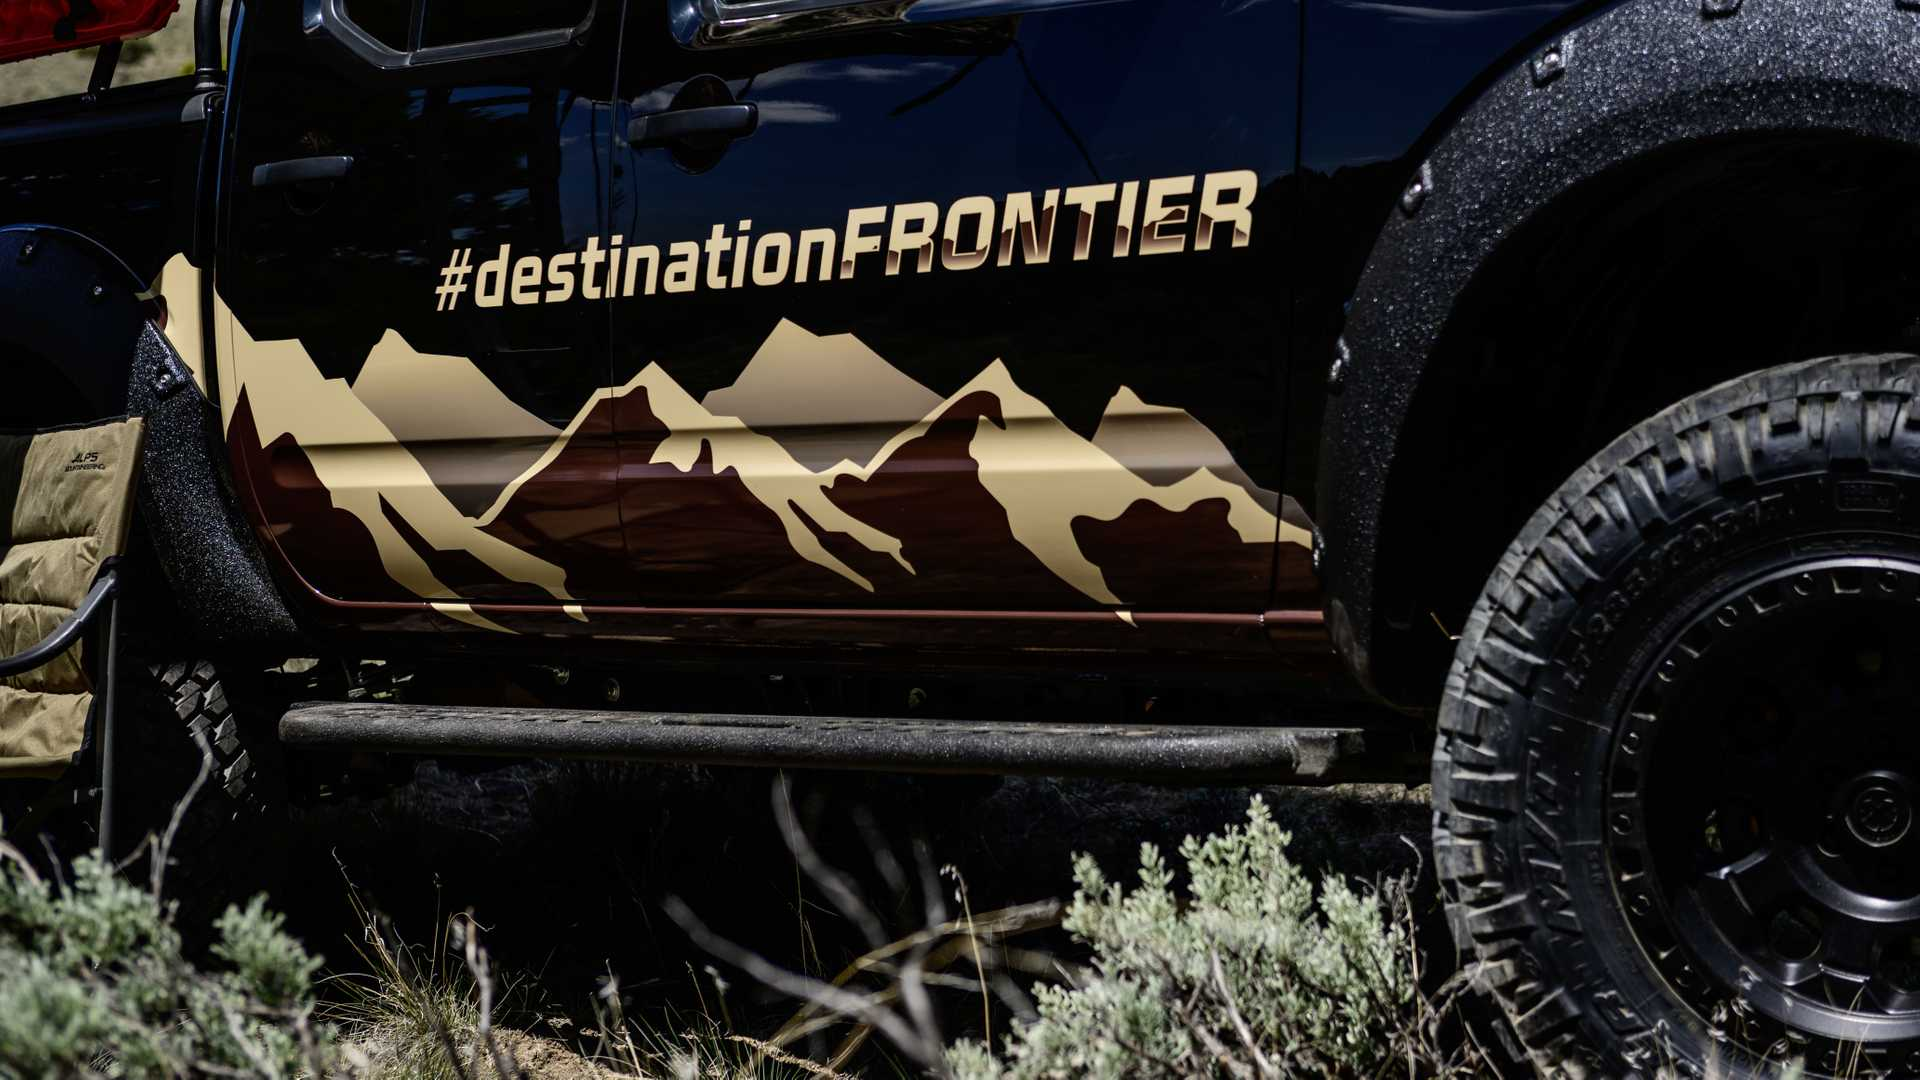 nissan-destination-frontier-1